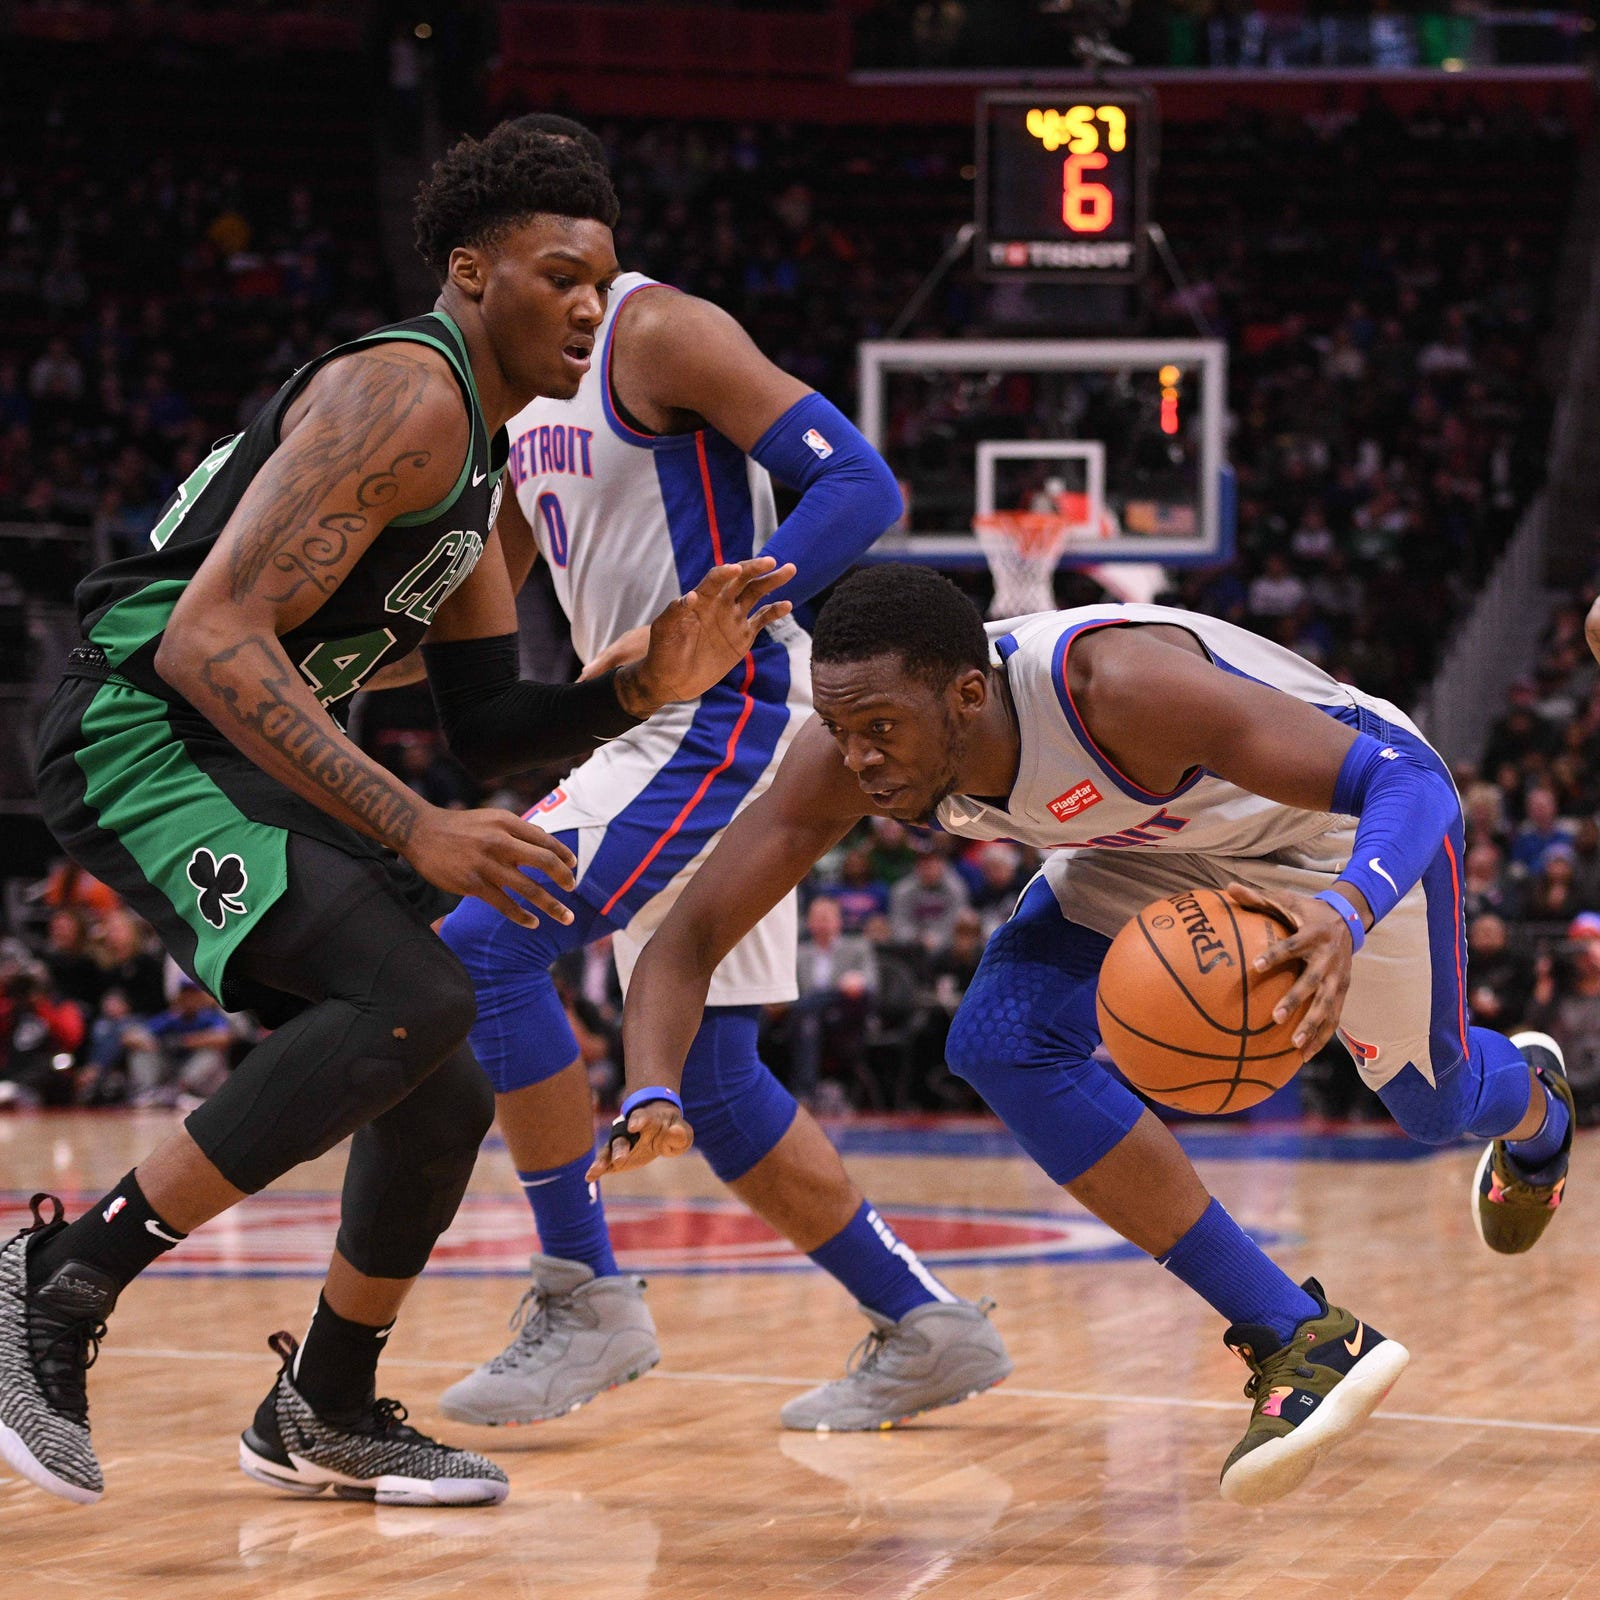 Detroit Pistons snap six-game skid with Reggie Bullock's return from injury